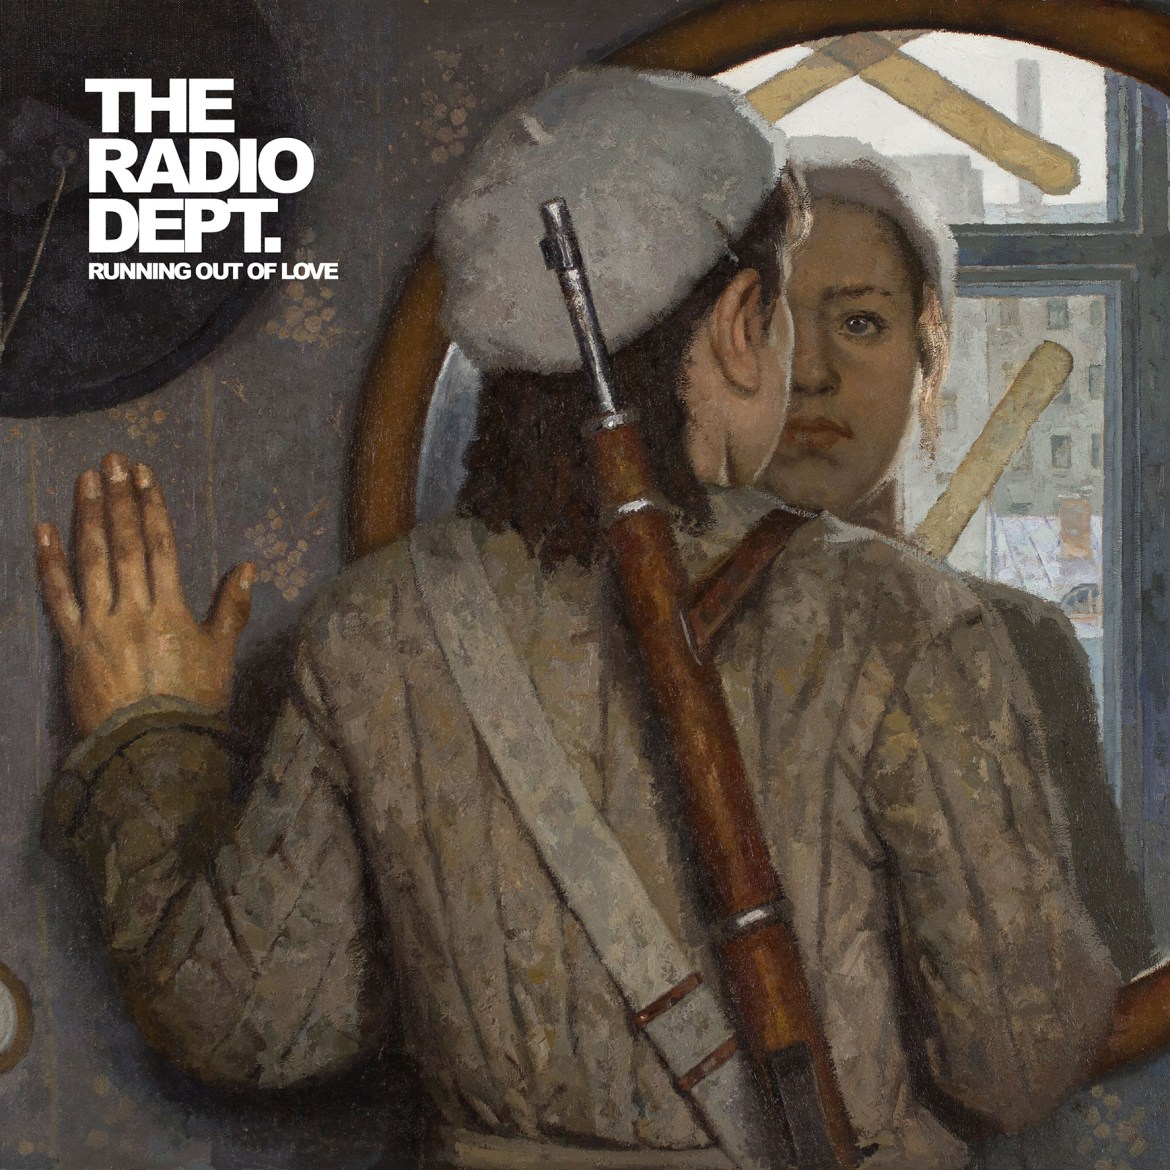 NEWS: The Radio Dept. return with new album 'Running Out of Love' in October